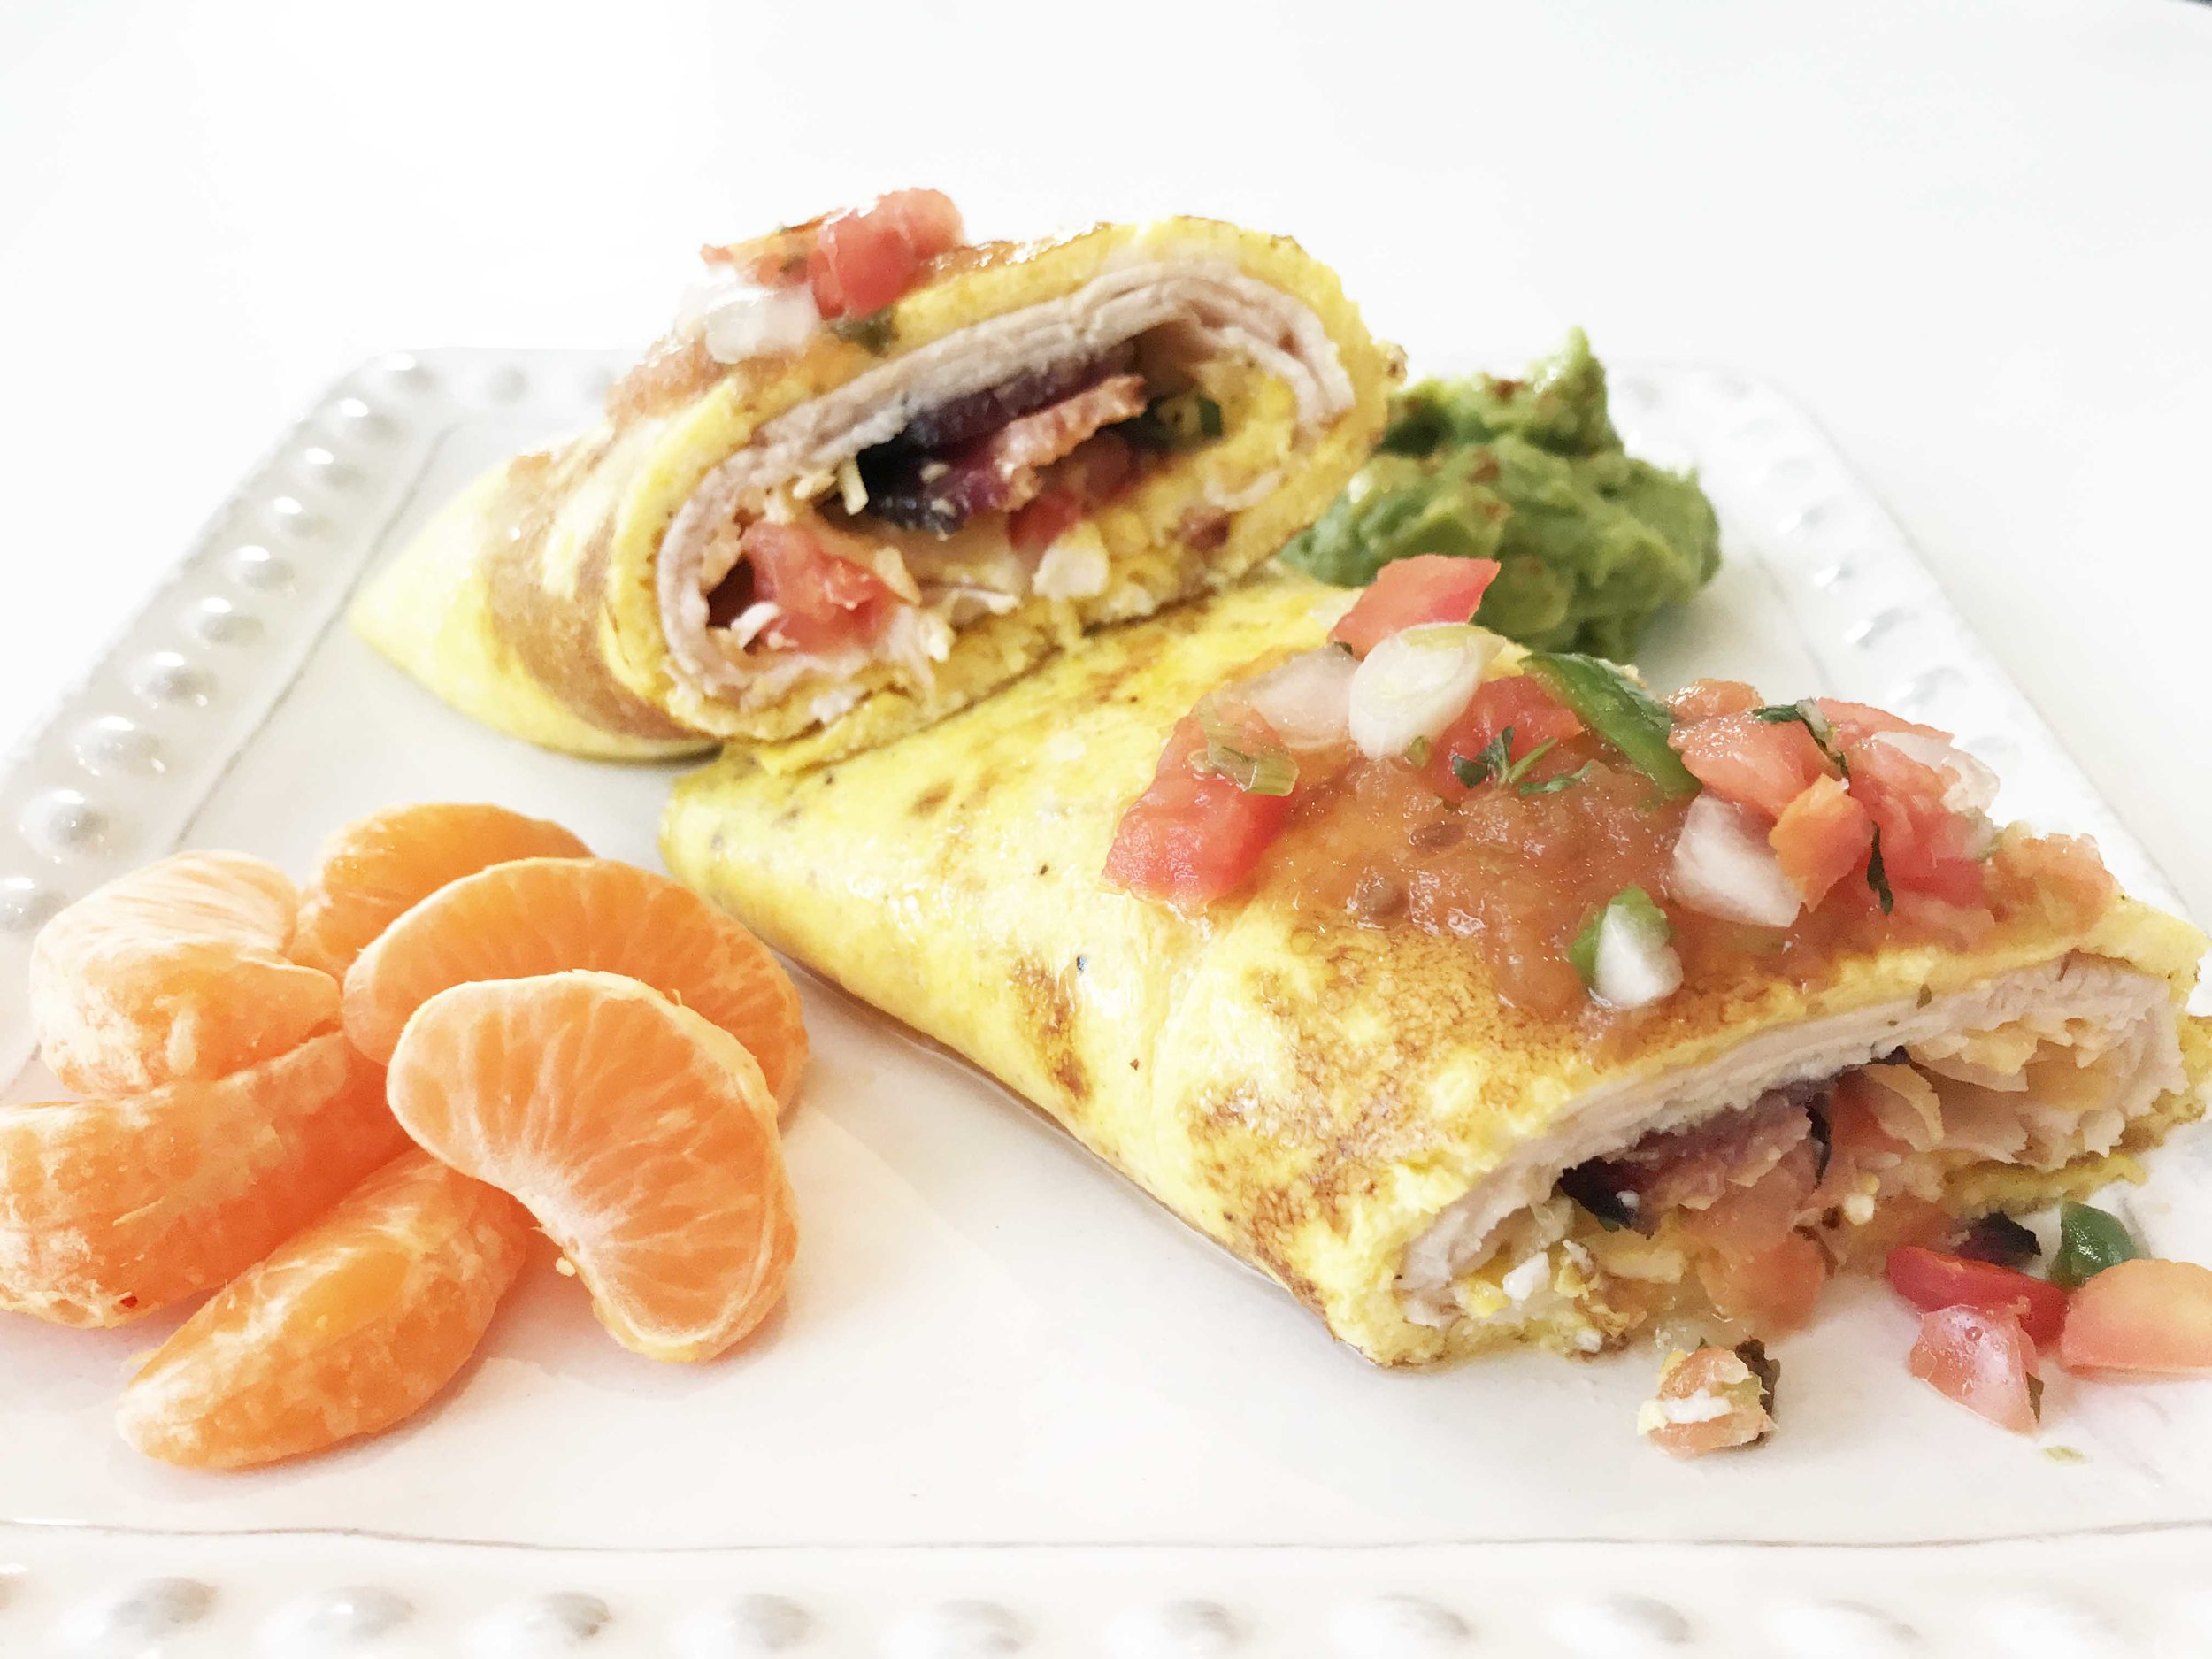 low-carb-breakfast-burrito6.jpg